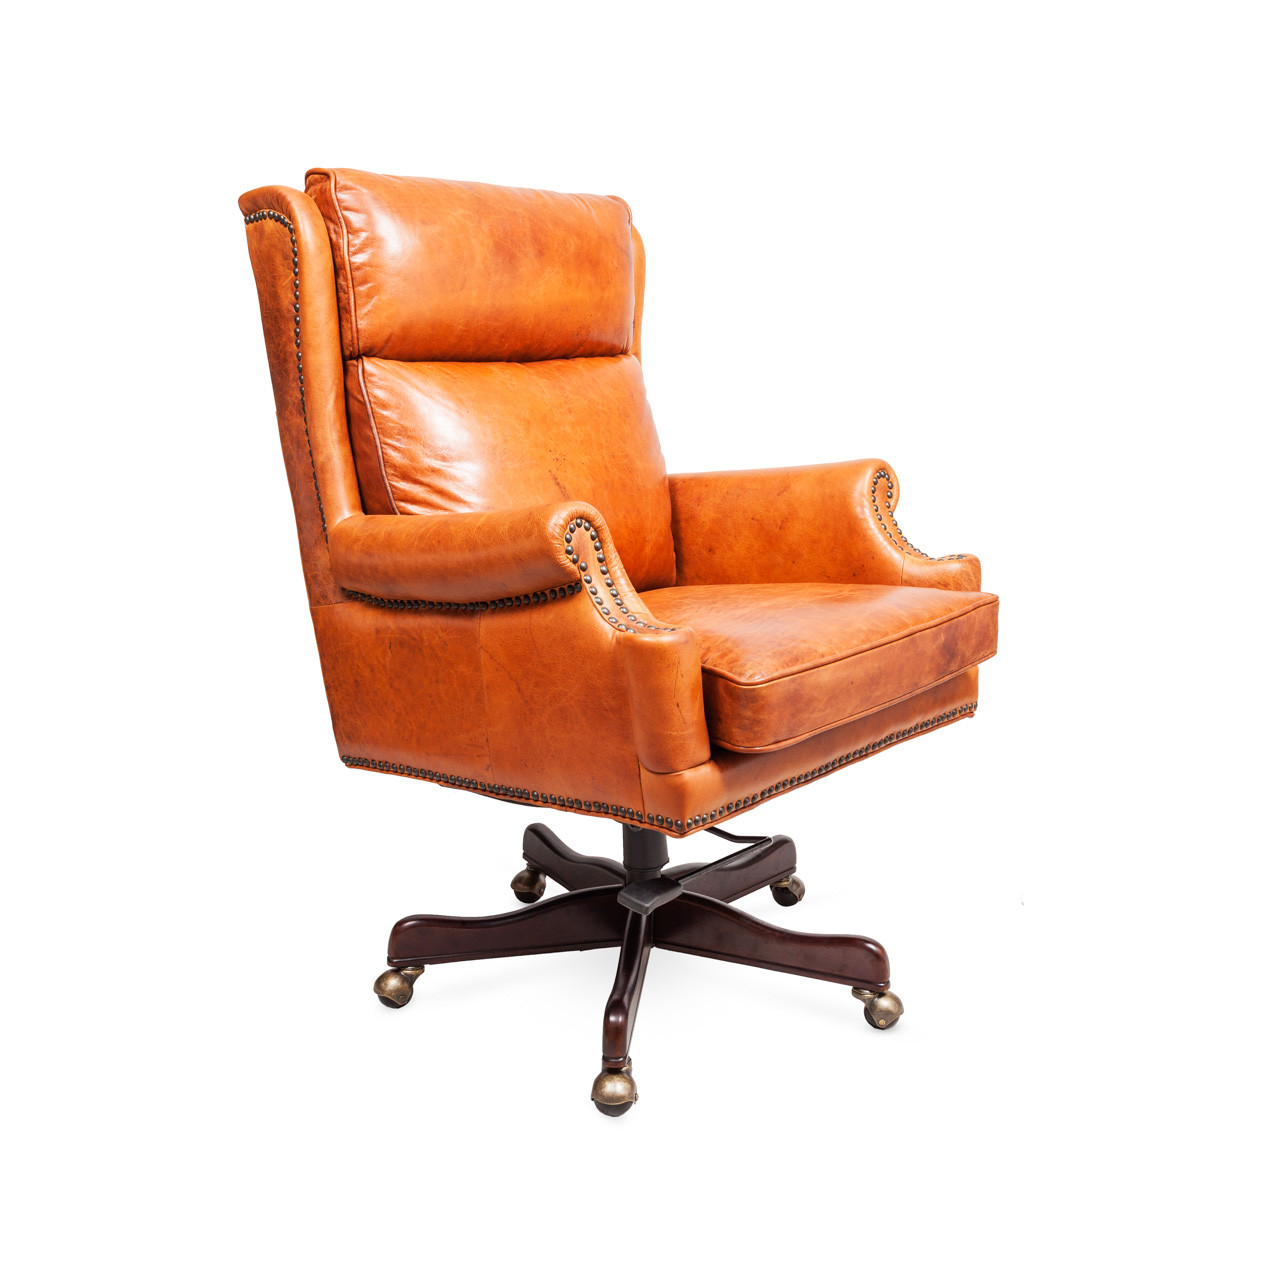 Wonderful image of Tan Leather Office Chair Aged Leather Office Chair See with #C1530A color and 1280x1280 pixels